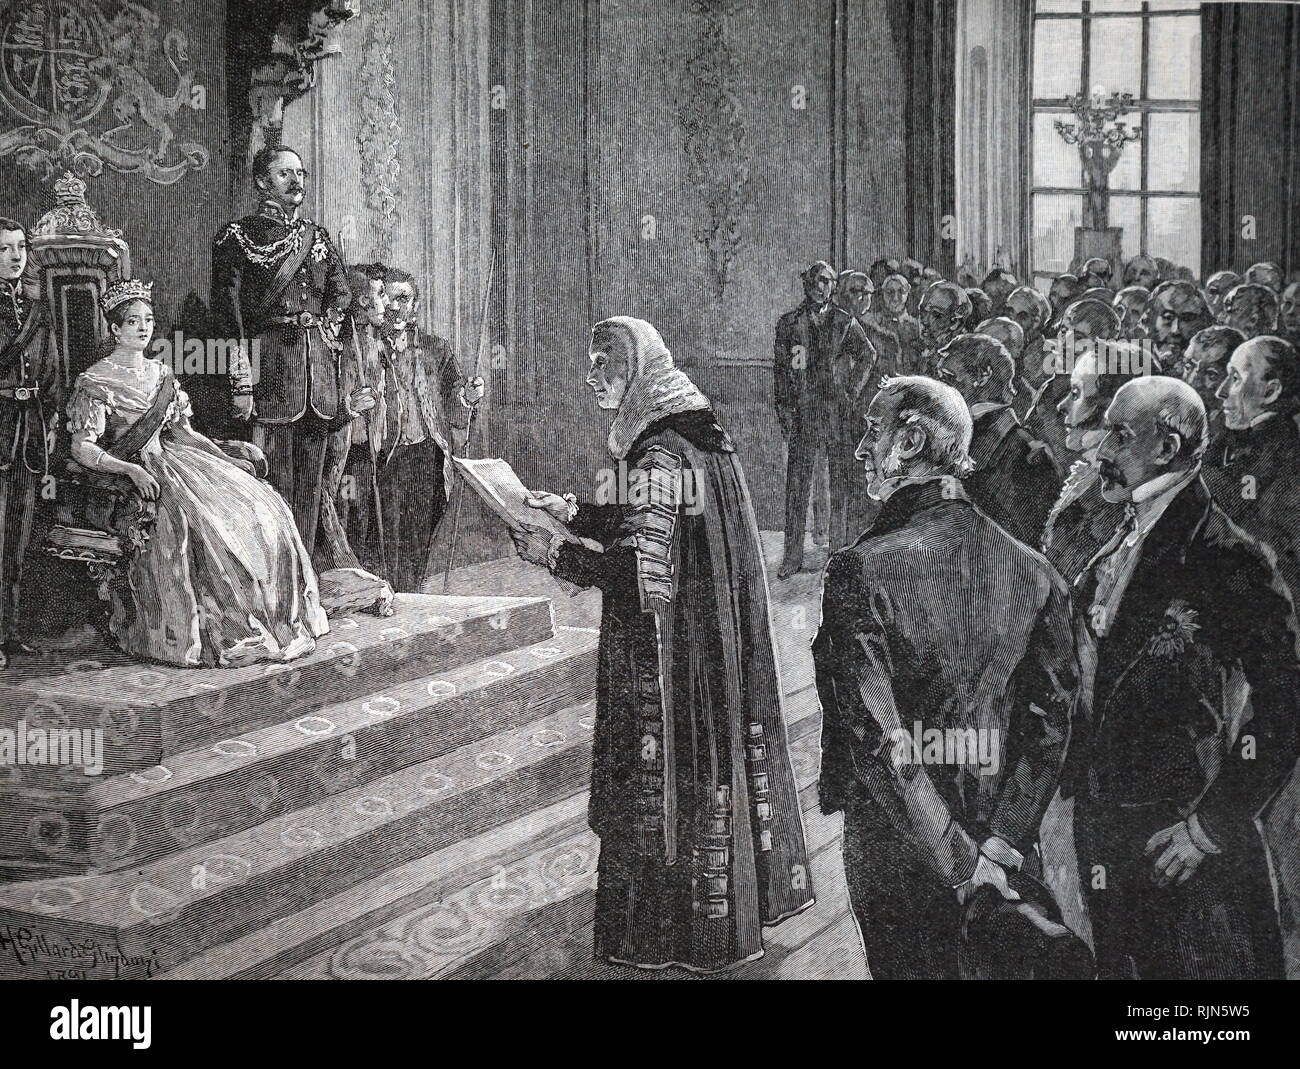 Peers and Commoners presenting a patriotic address to Queen Victoria on the eve of the Crimean War 1853. Wood engraving - Stock Image